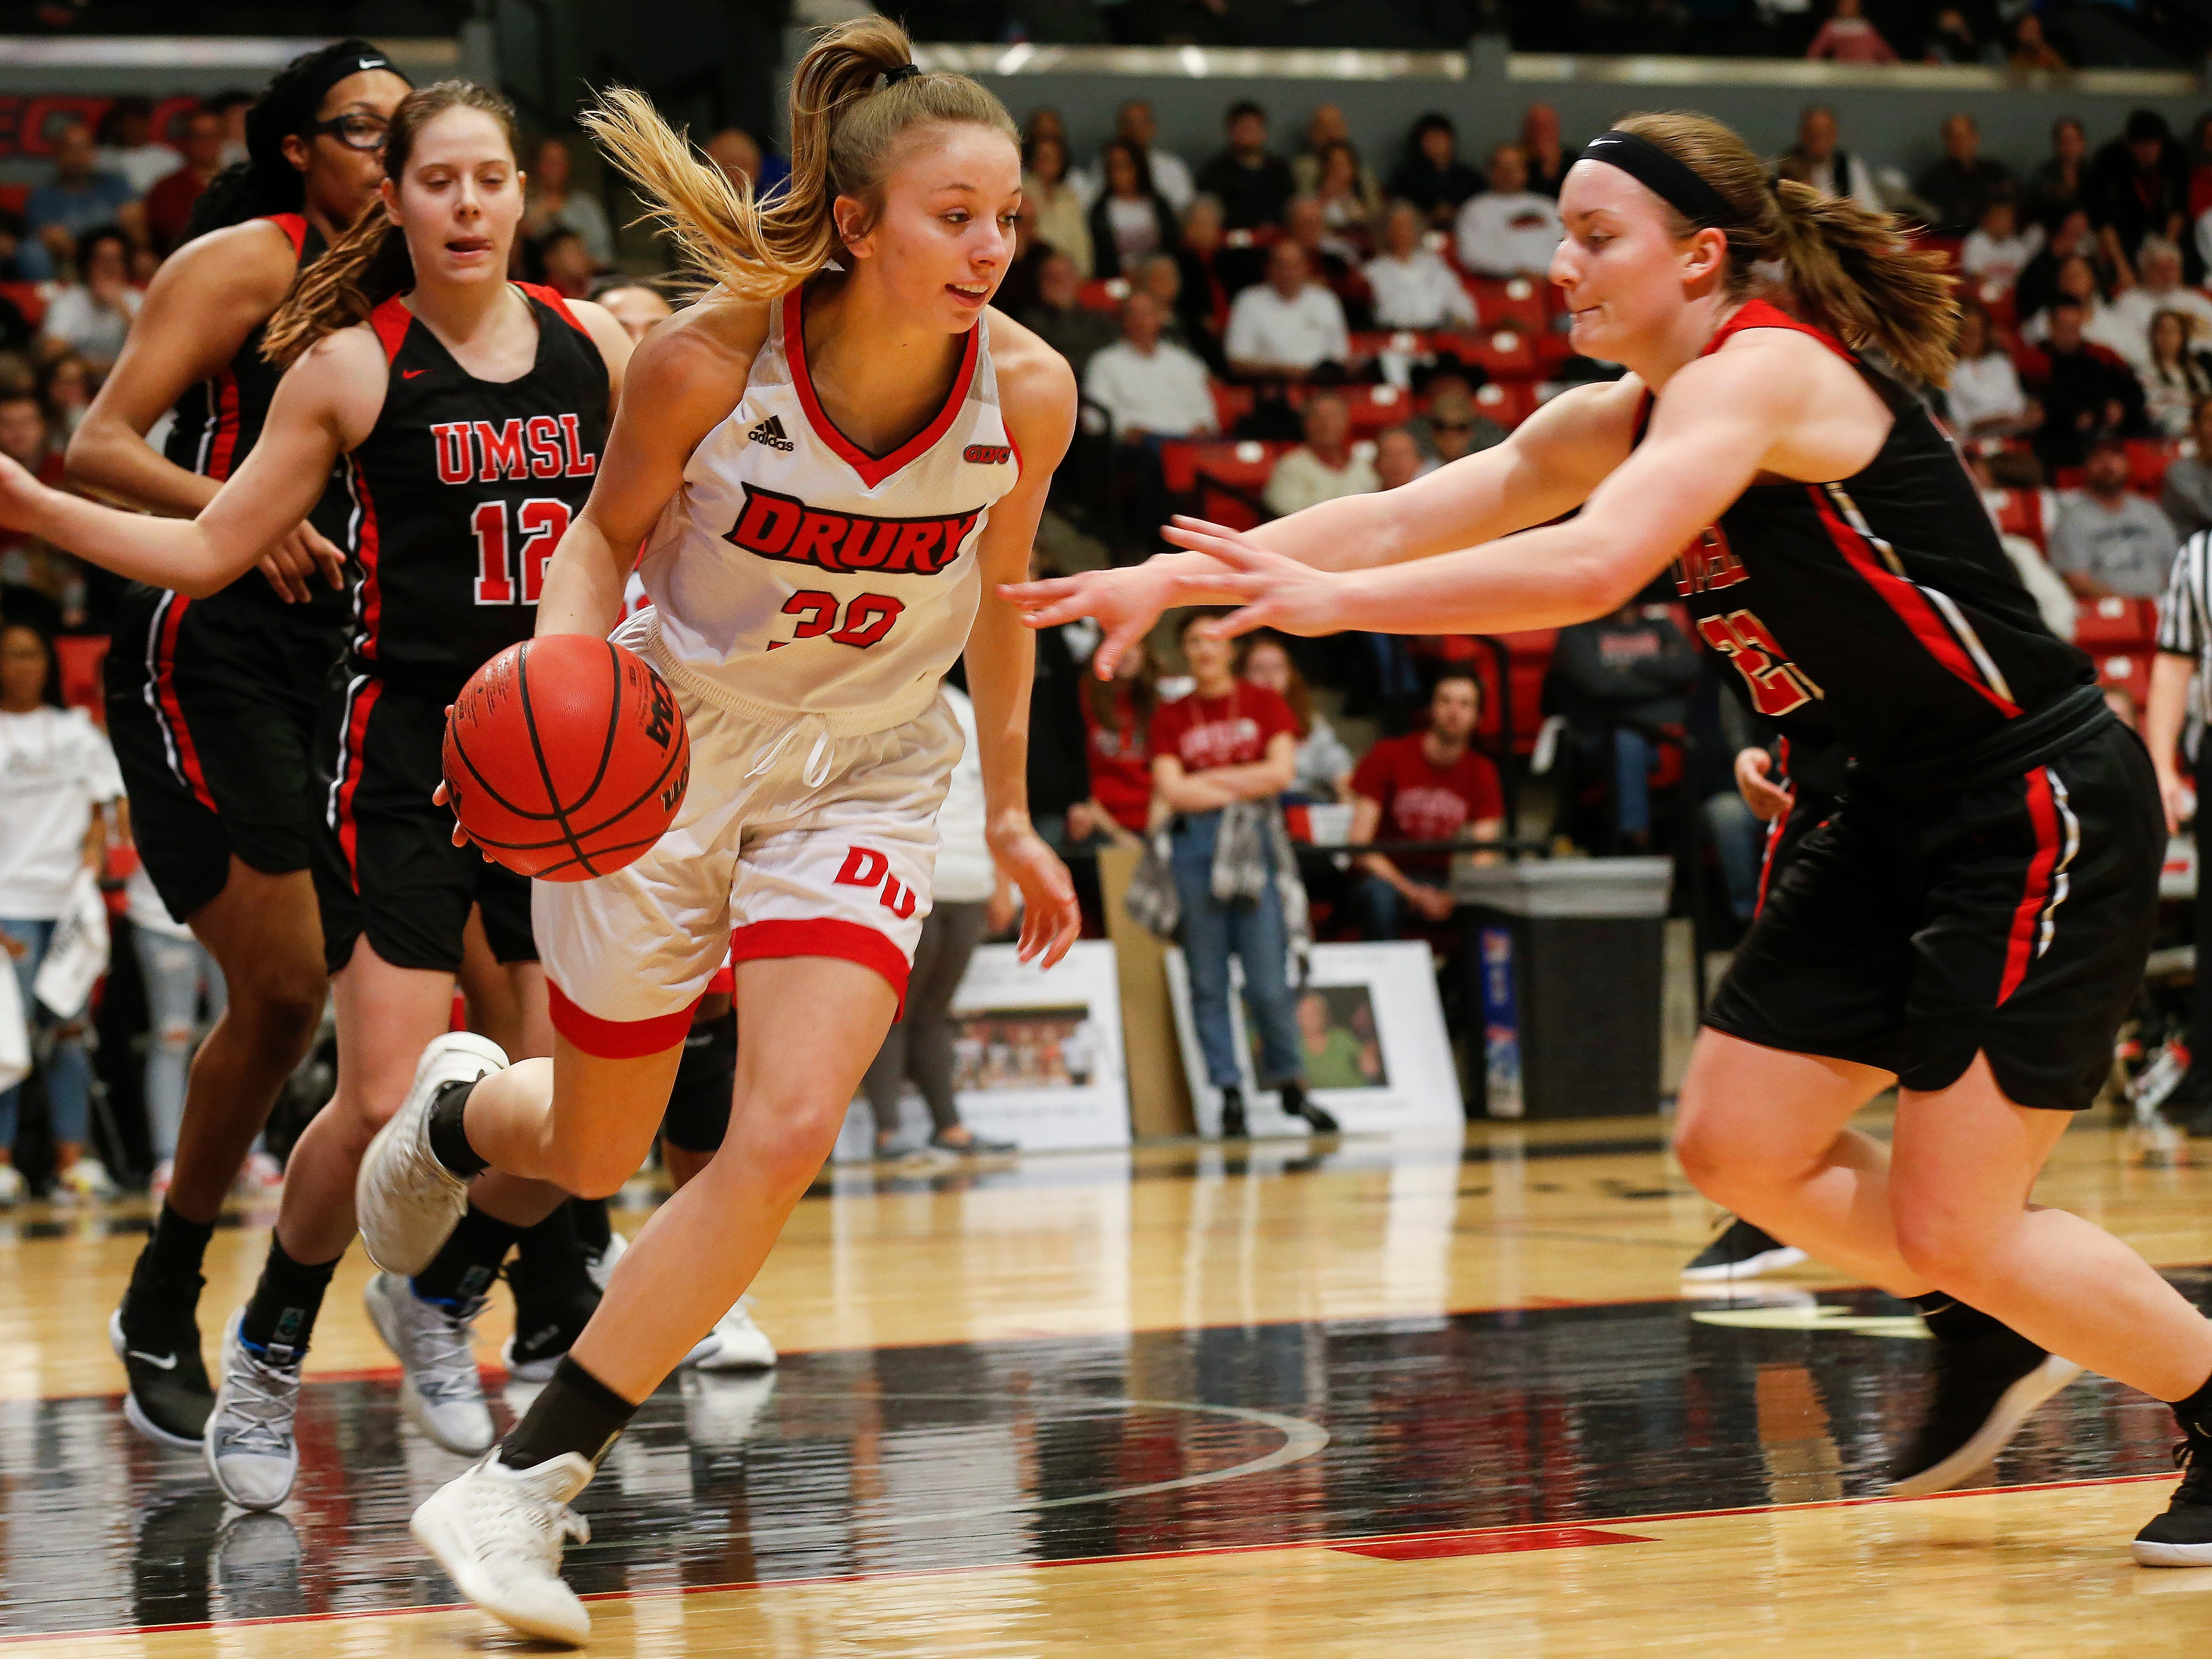 Brooke Stanfield, of Drury, dribbles the ball during the Lady Panthers' 77-44 win over the University of Missouri St. Louis Tritons during the Overflow the O game at the O'Reilly Family Event Center on Saturday, Feb. 9, 2019.